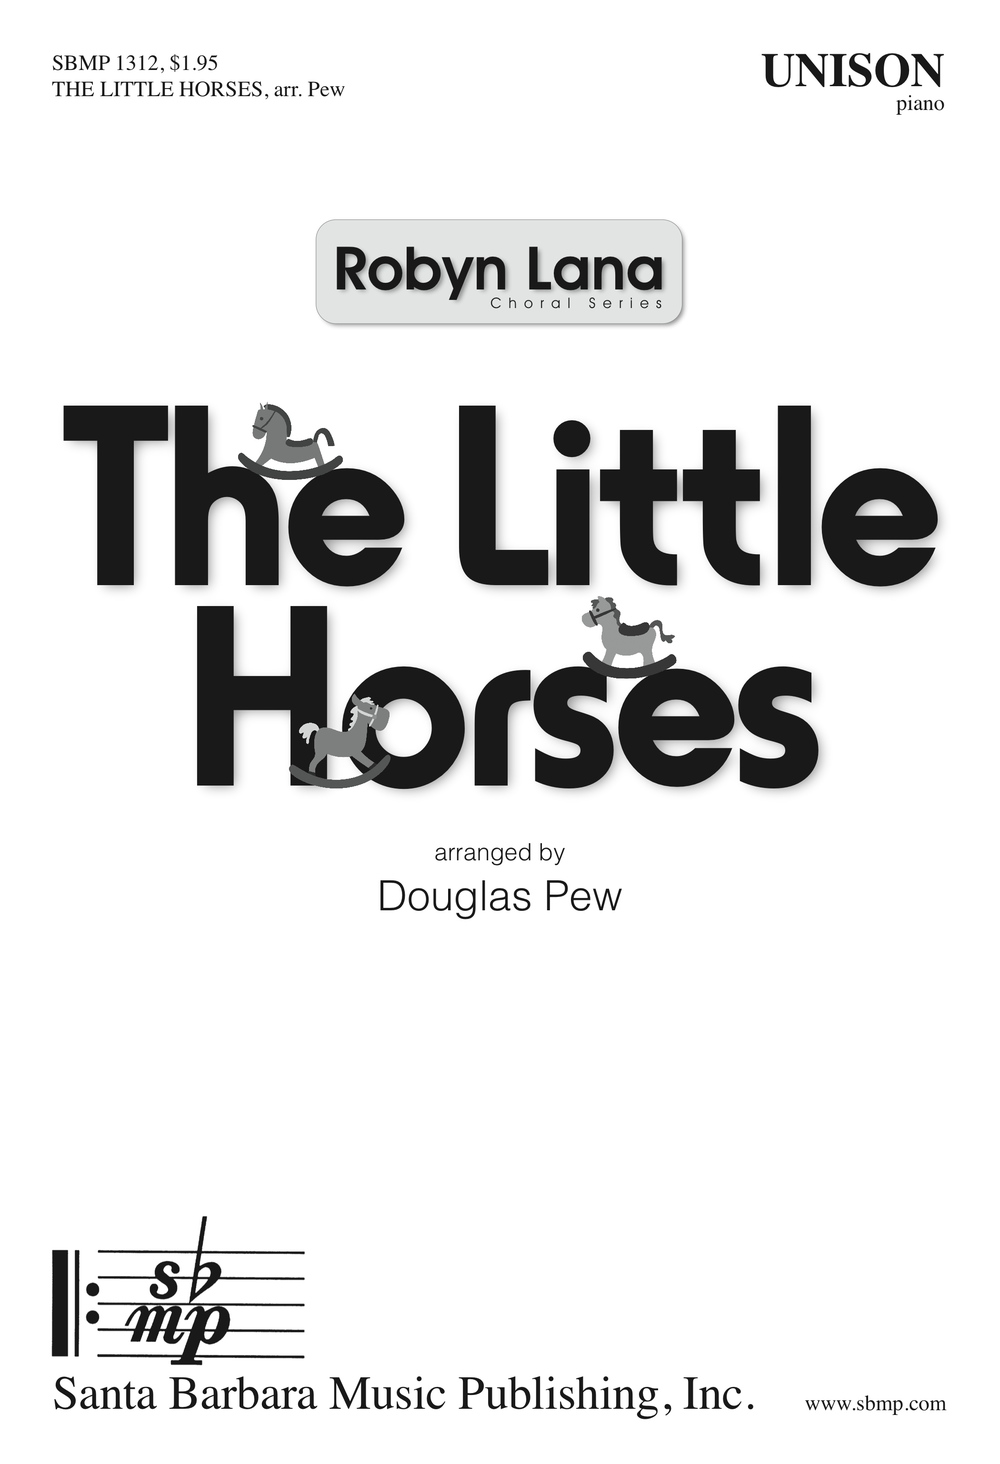 The LIttle Horses (1312) Final proof 1.jpg